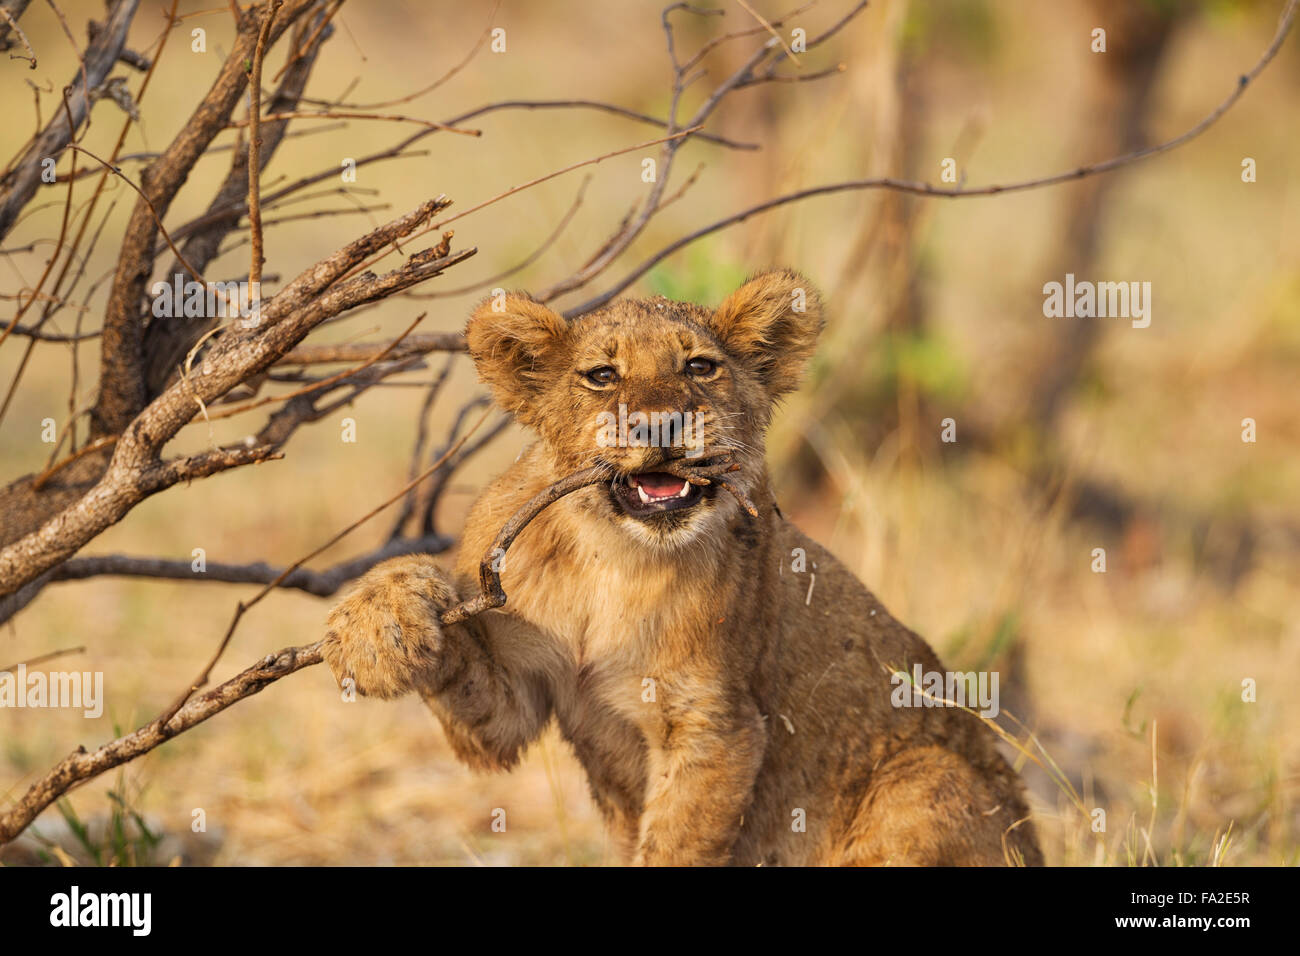 Lion (Panthera leo), playful cub, biting a twig, Savuti, Chobe National Park, Botswana - Stock Image